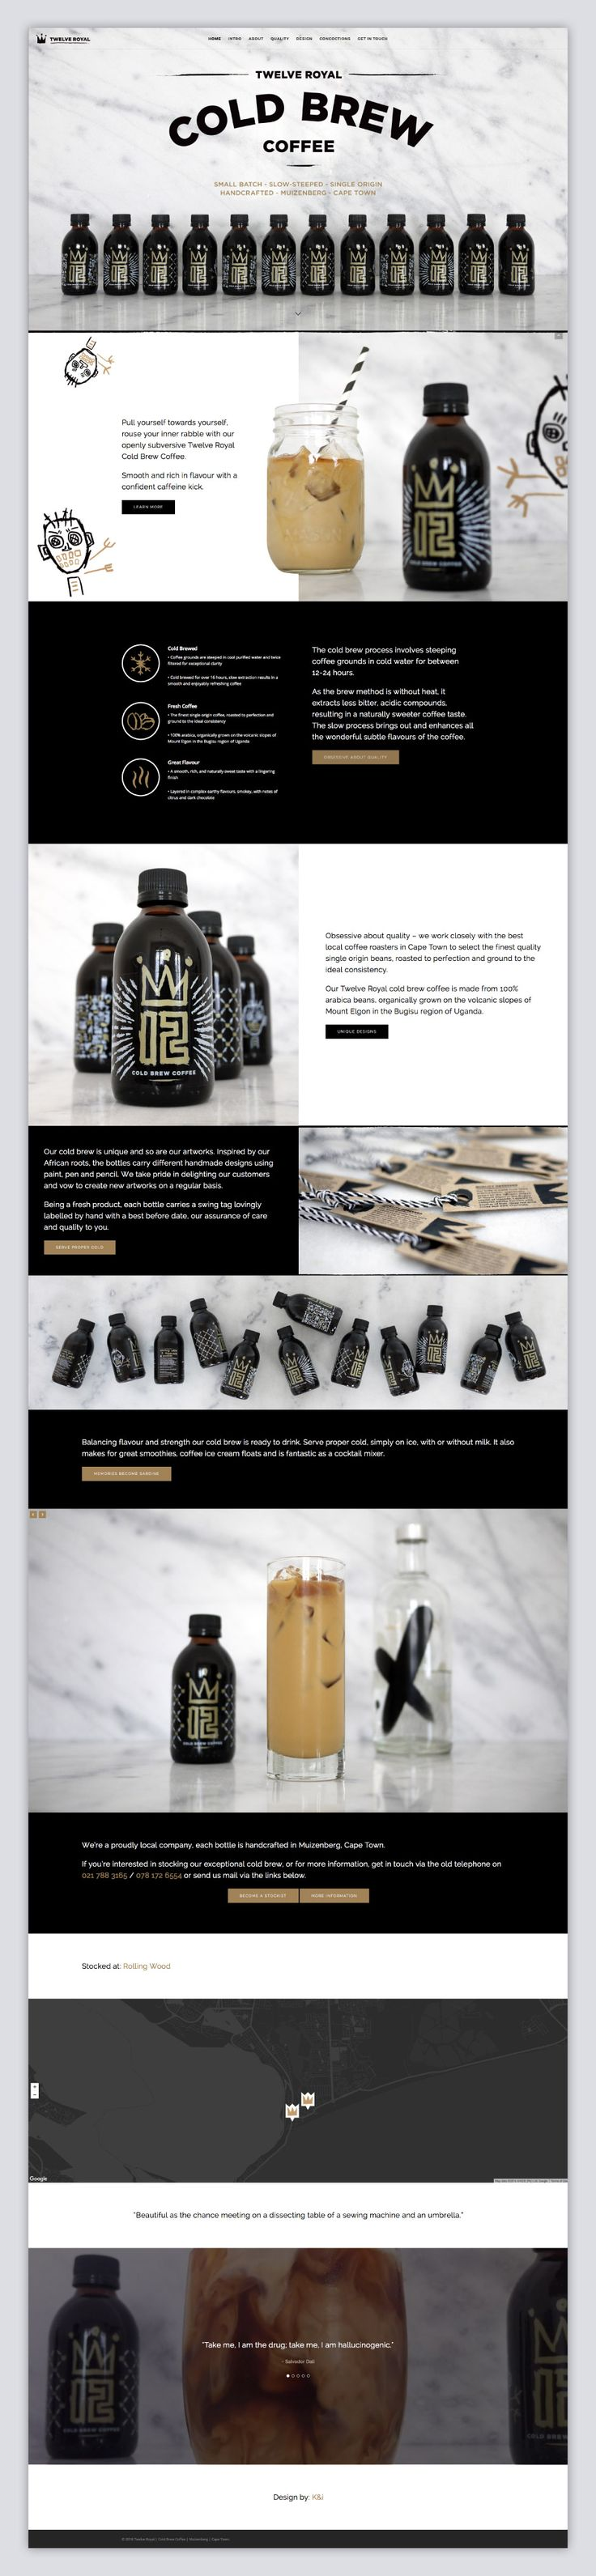 Twelve Royal Cold Brew Coffee identity, packaging and website   K&i